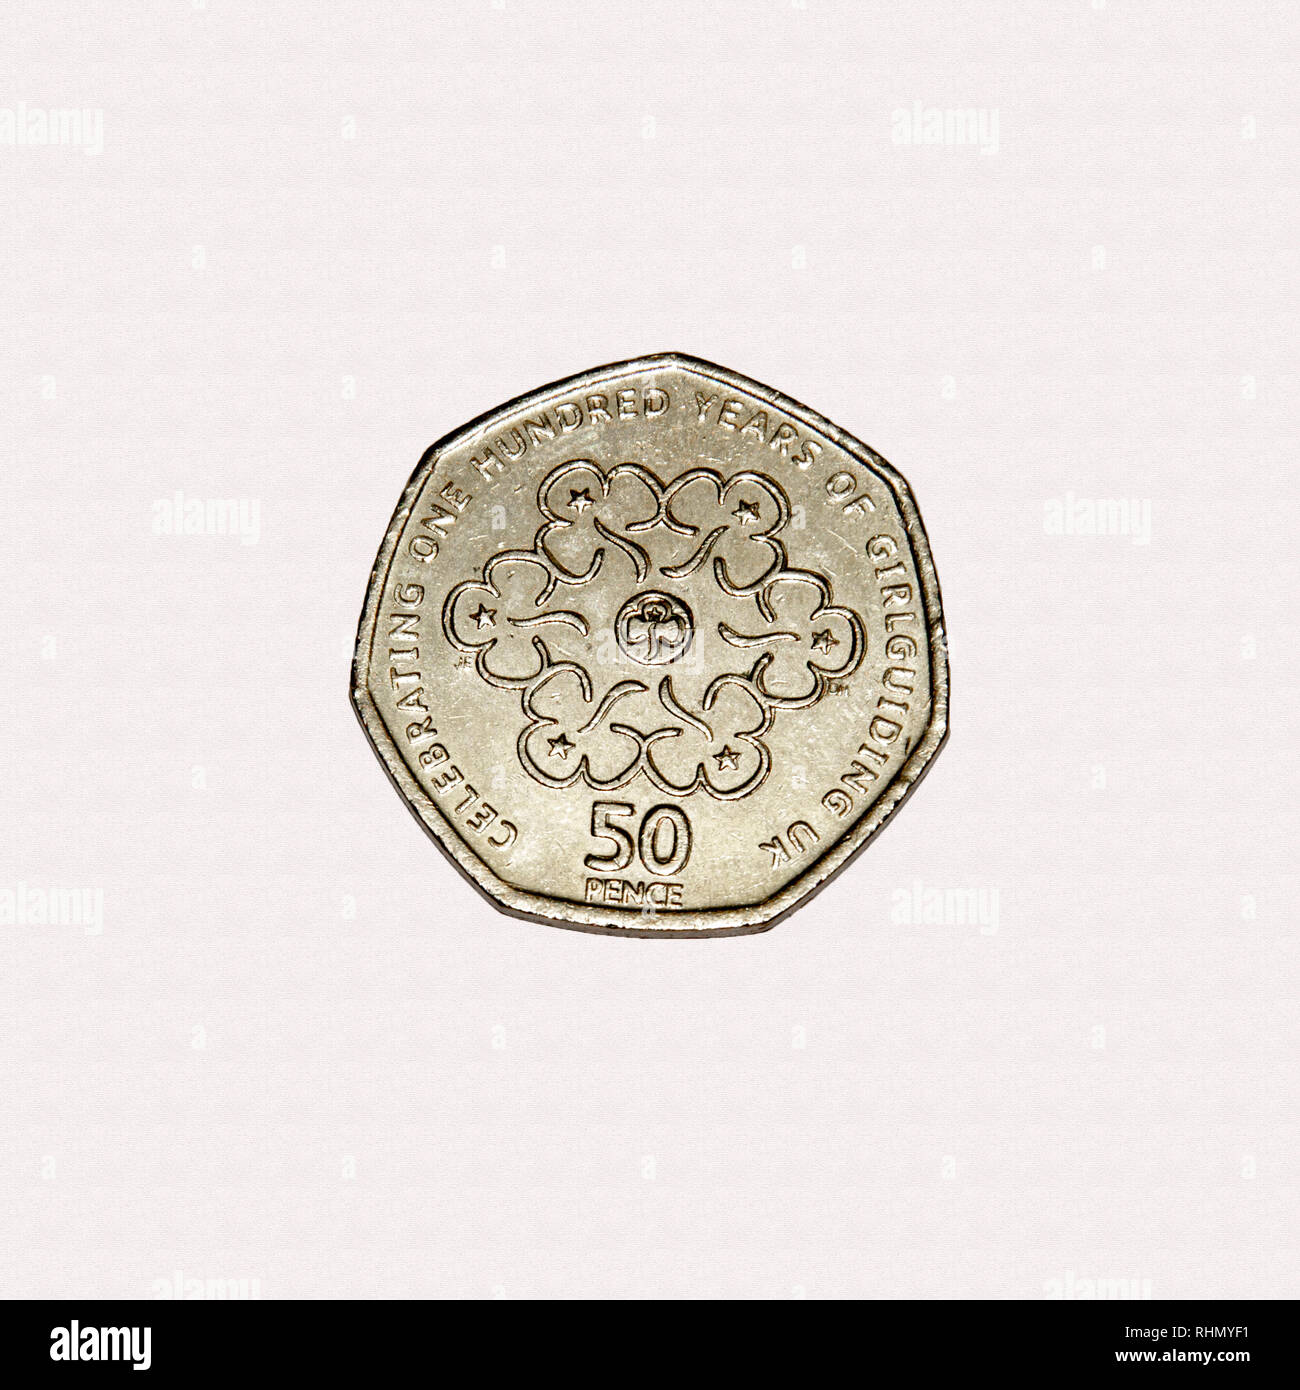 Limited edition British 50p piece coin commemorating one hundred years of the Girl Guides movement Stock Photo